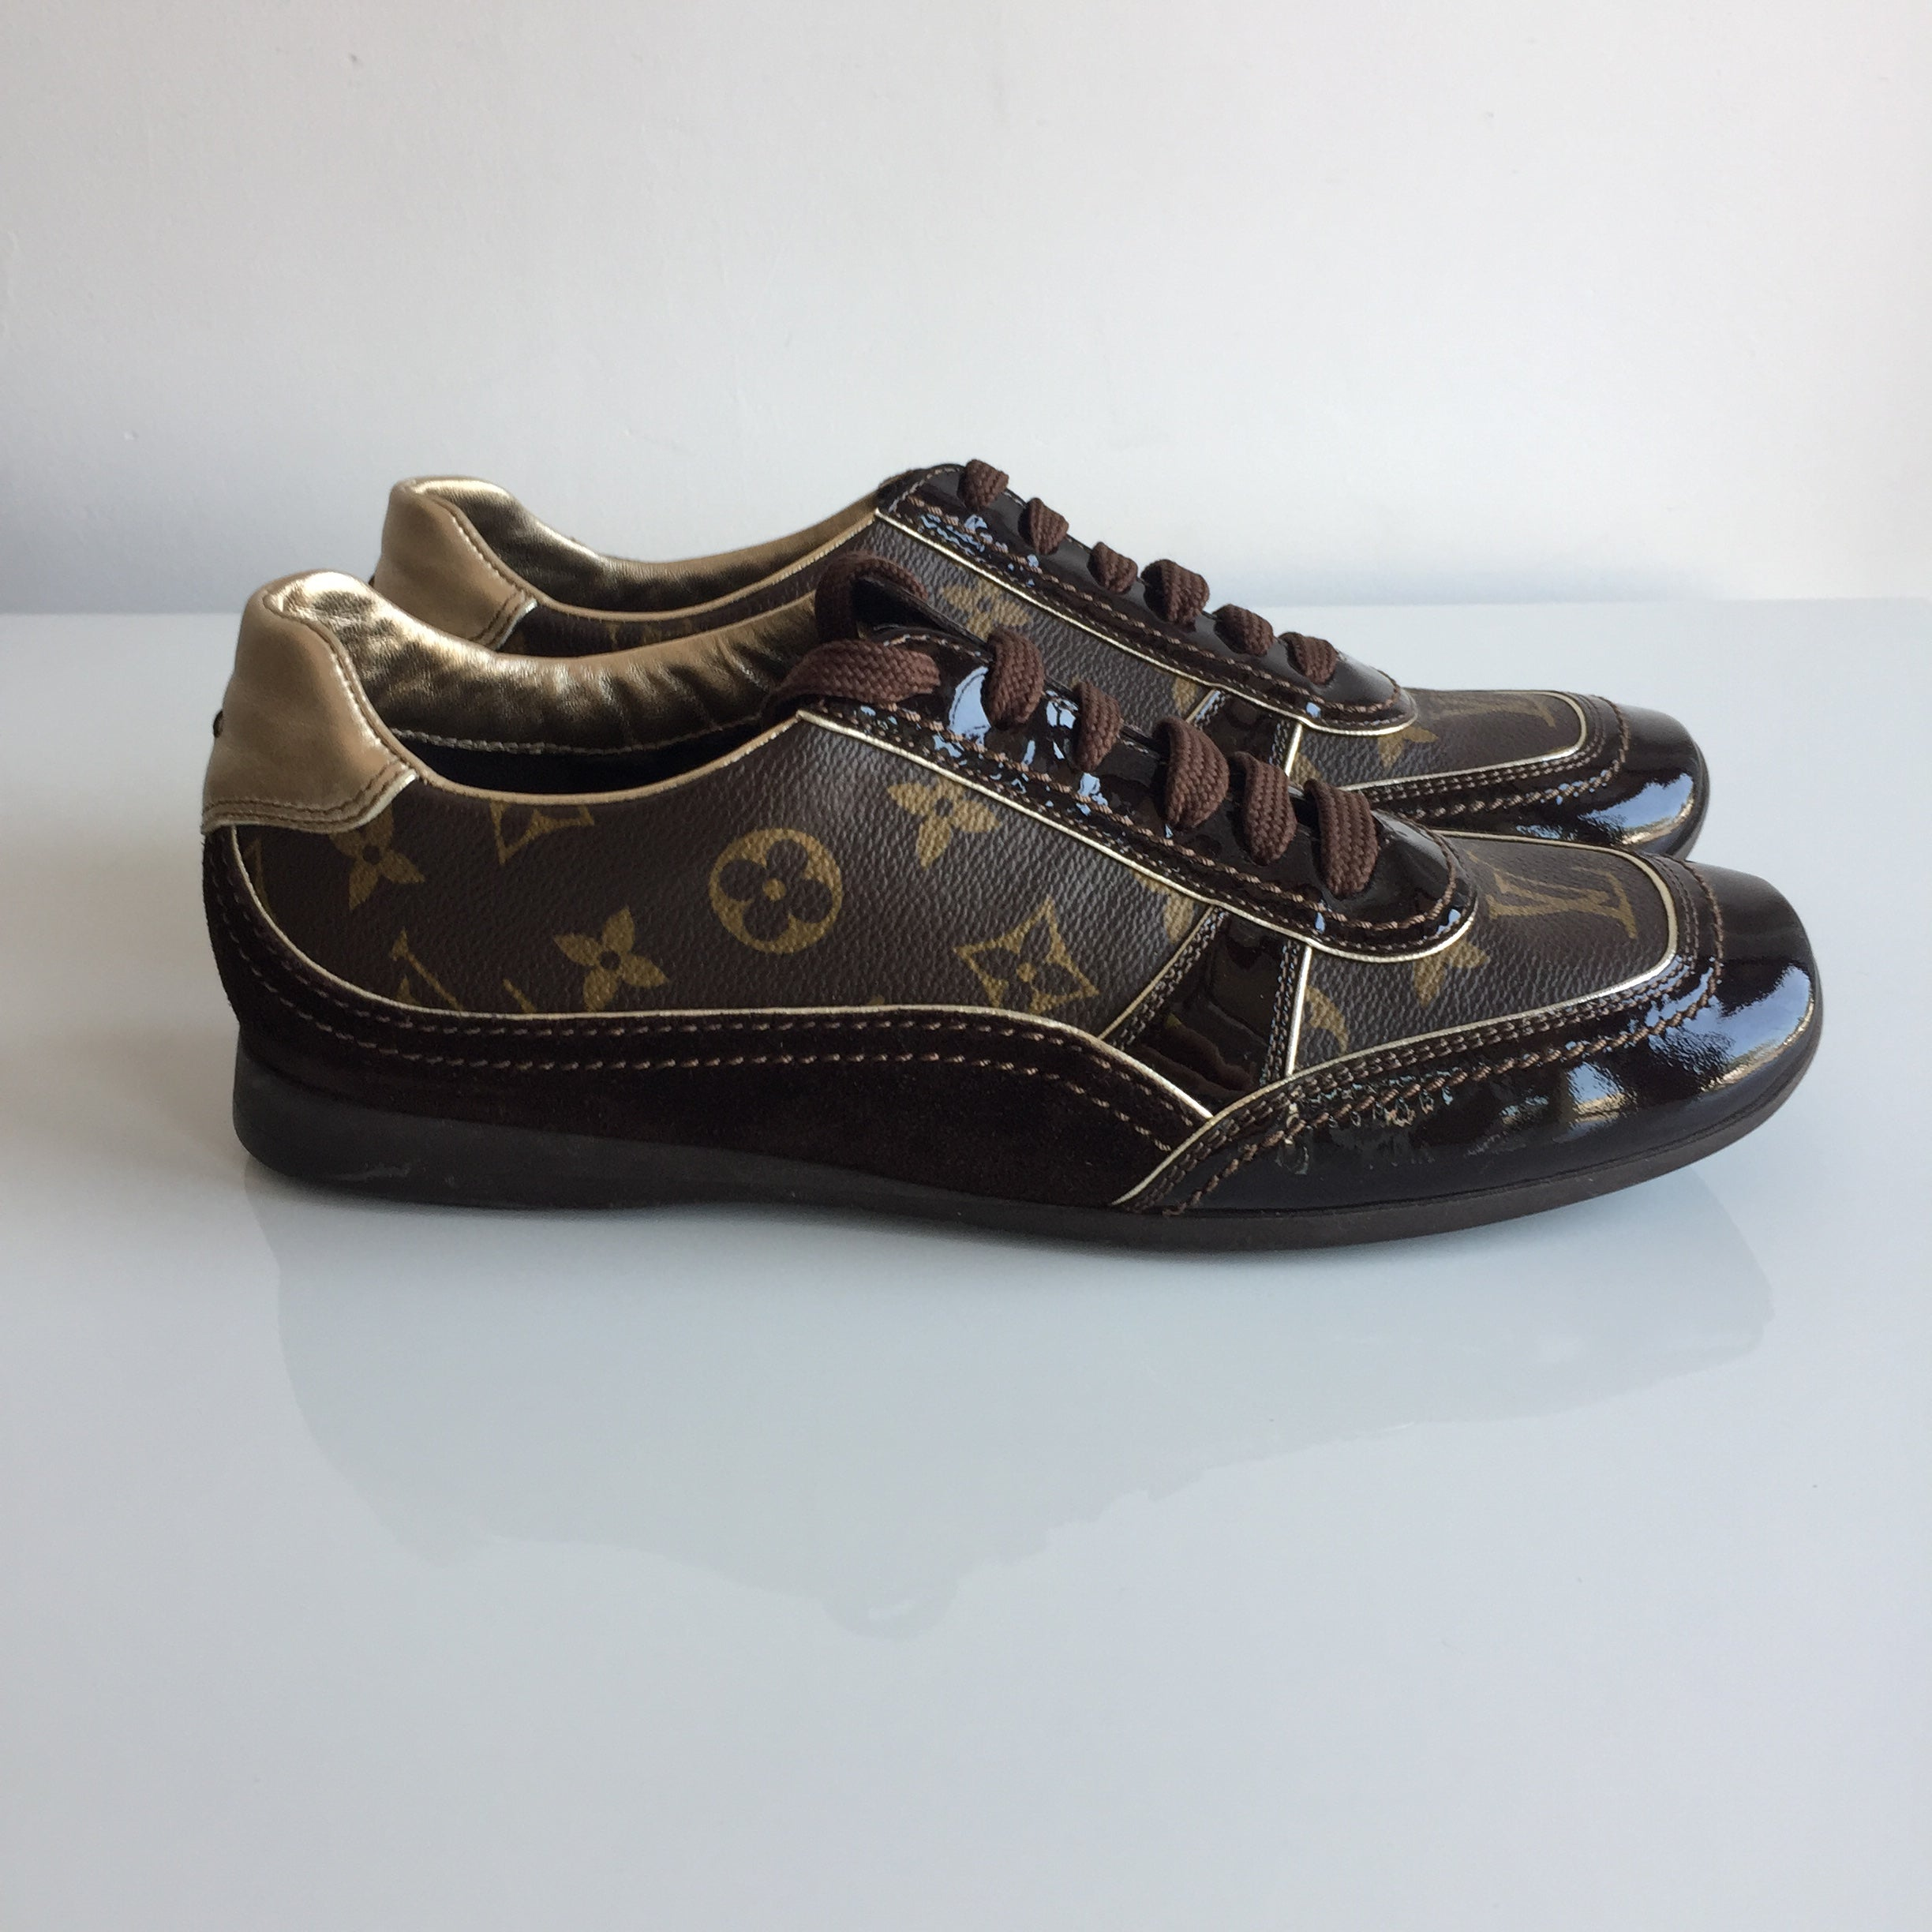 Authentic LOUIS VUITTON Monogram Sneakers Size 7.5